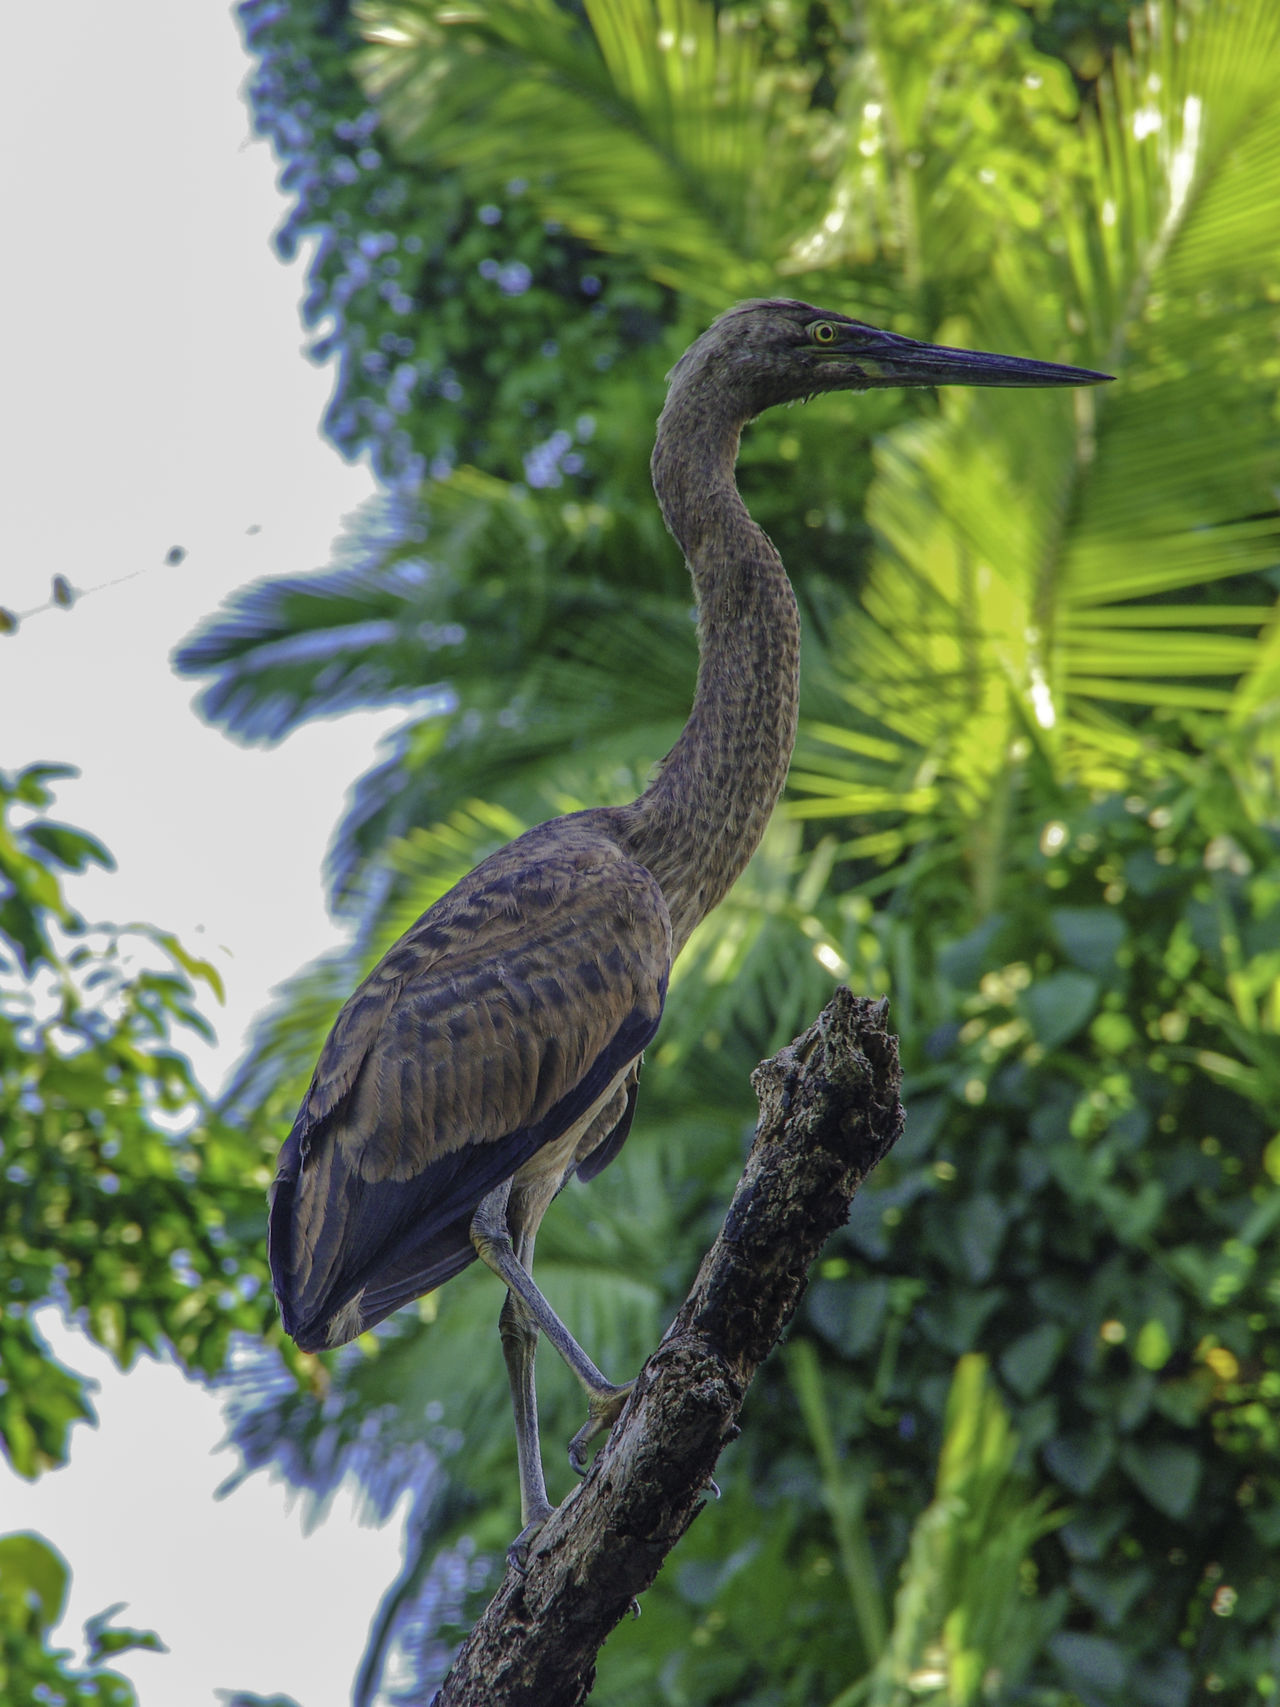 Animal Themes Animal Wildlife Animals In The Wild Australia Beauty In Nature Bird Branch Close-up Day Focus On Foreground Green Color Growth Heron Juvenile Birds Leaf Nature No People One Animal Outdoors Perching Plant Purpleheron Tree